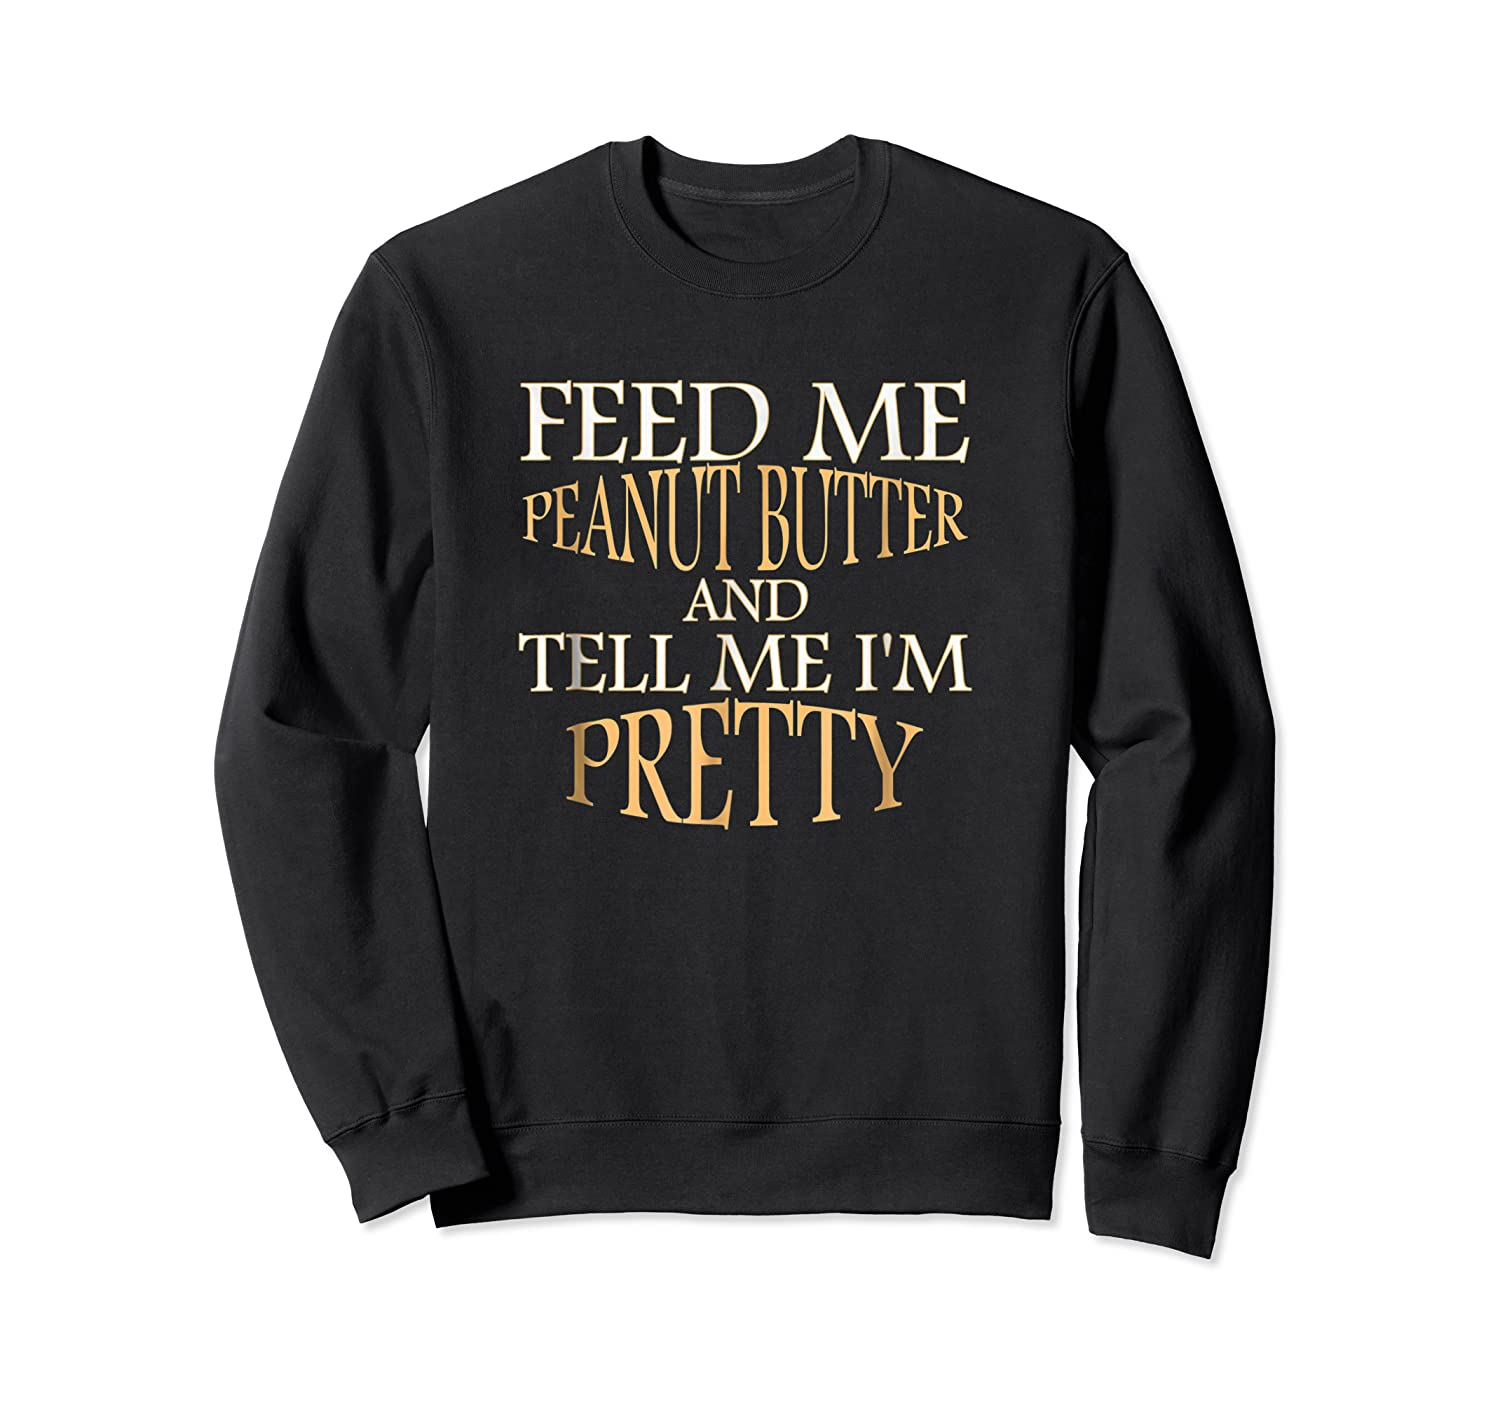 Feed Me Peanut Butter And Tell Me I M Pretty Funny Tshirt Crewneck Sweater